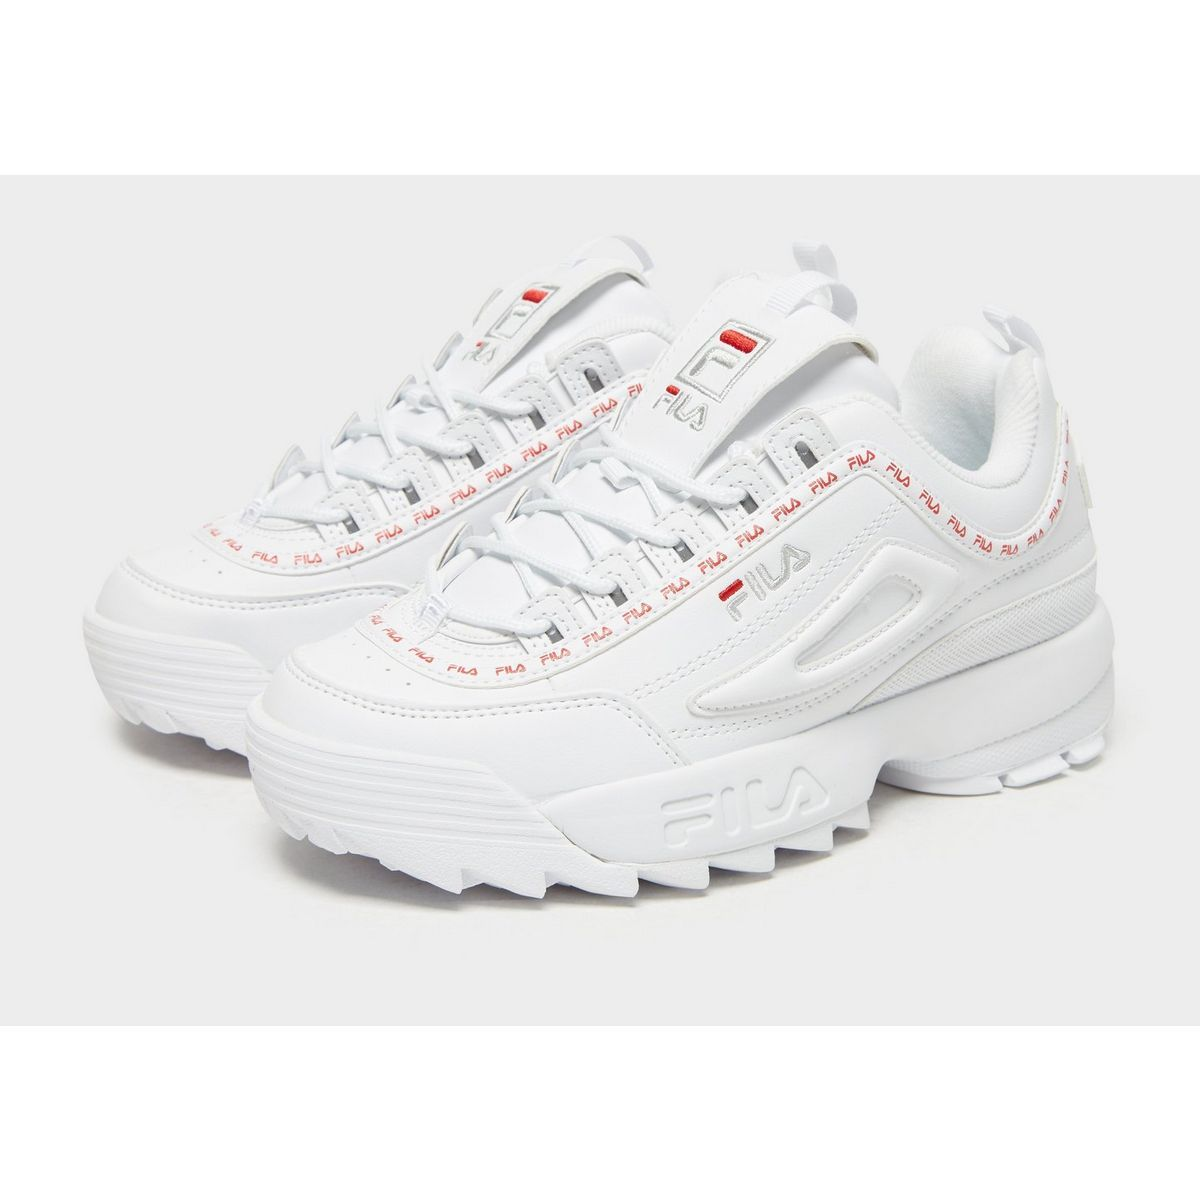 Fila Disruptor II Repeat Women's in 2019 | fila | Fila disruptors ...